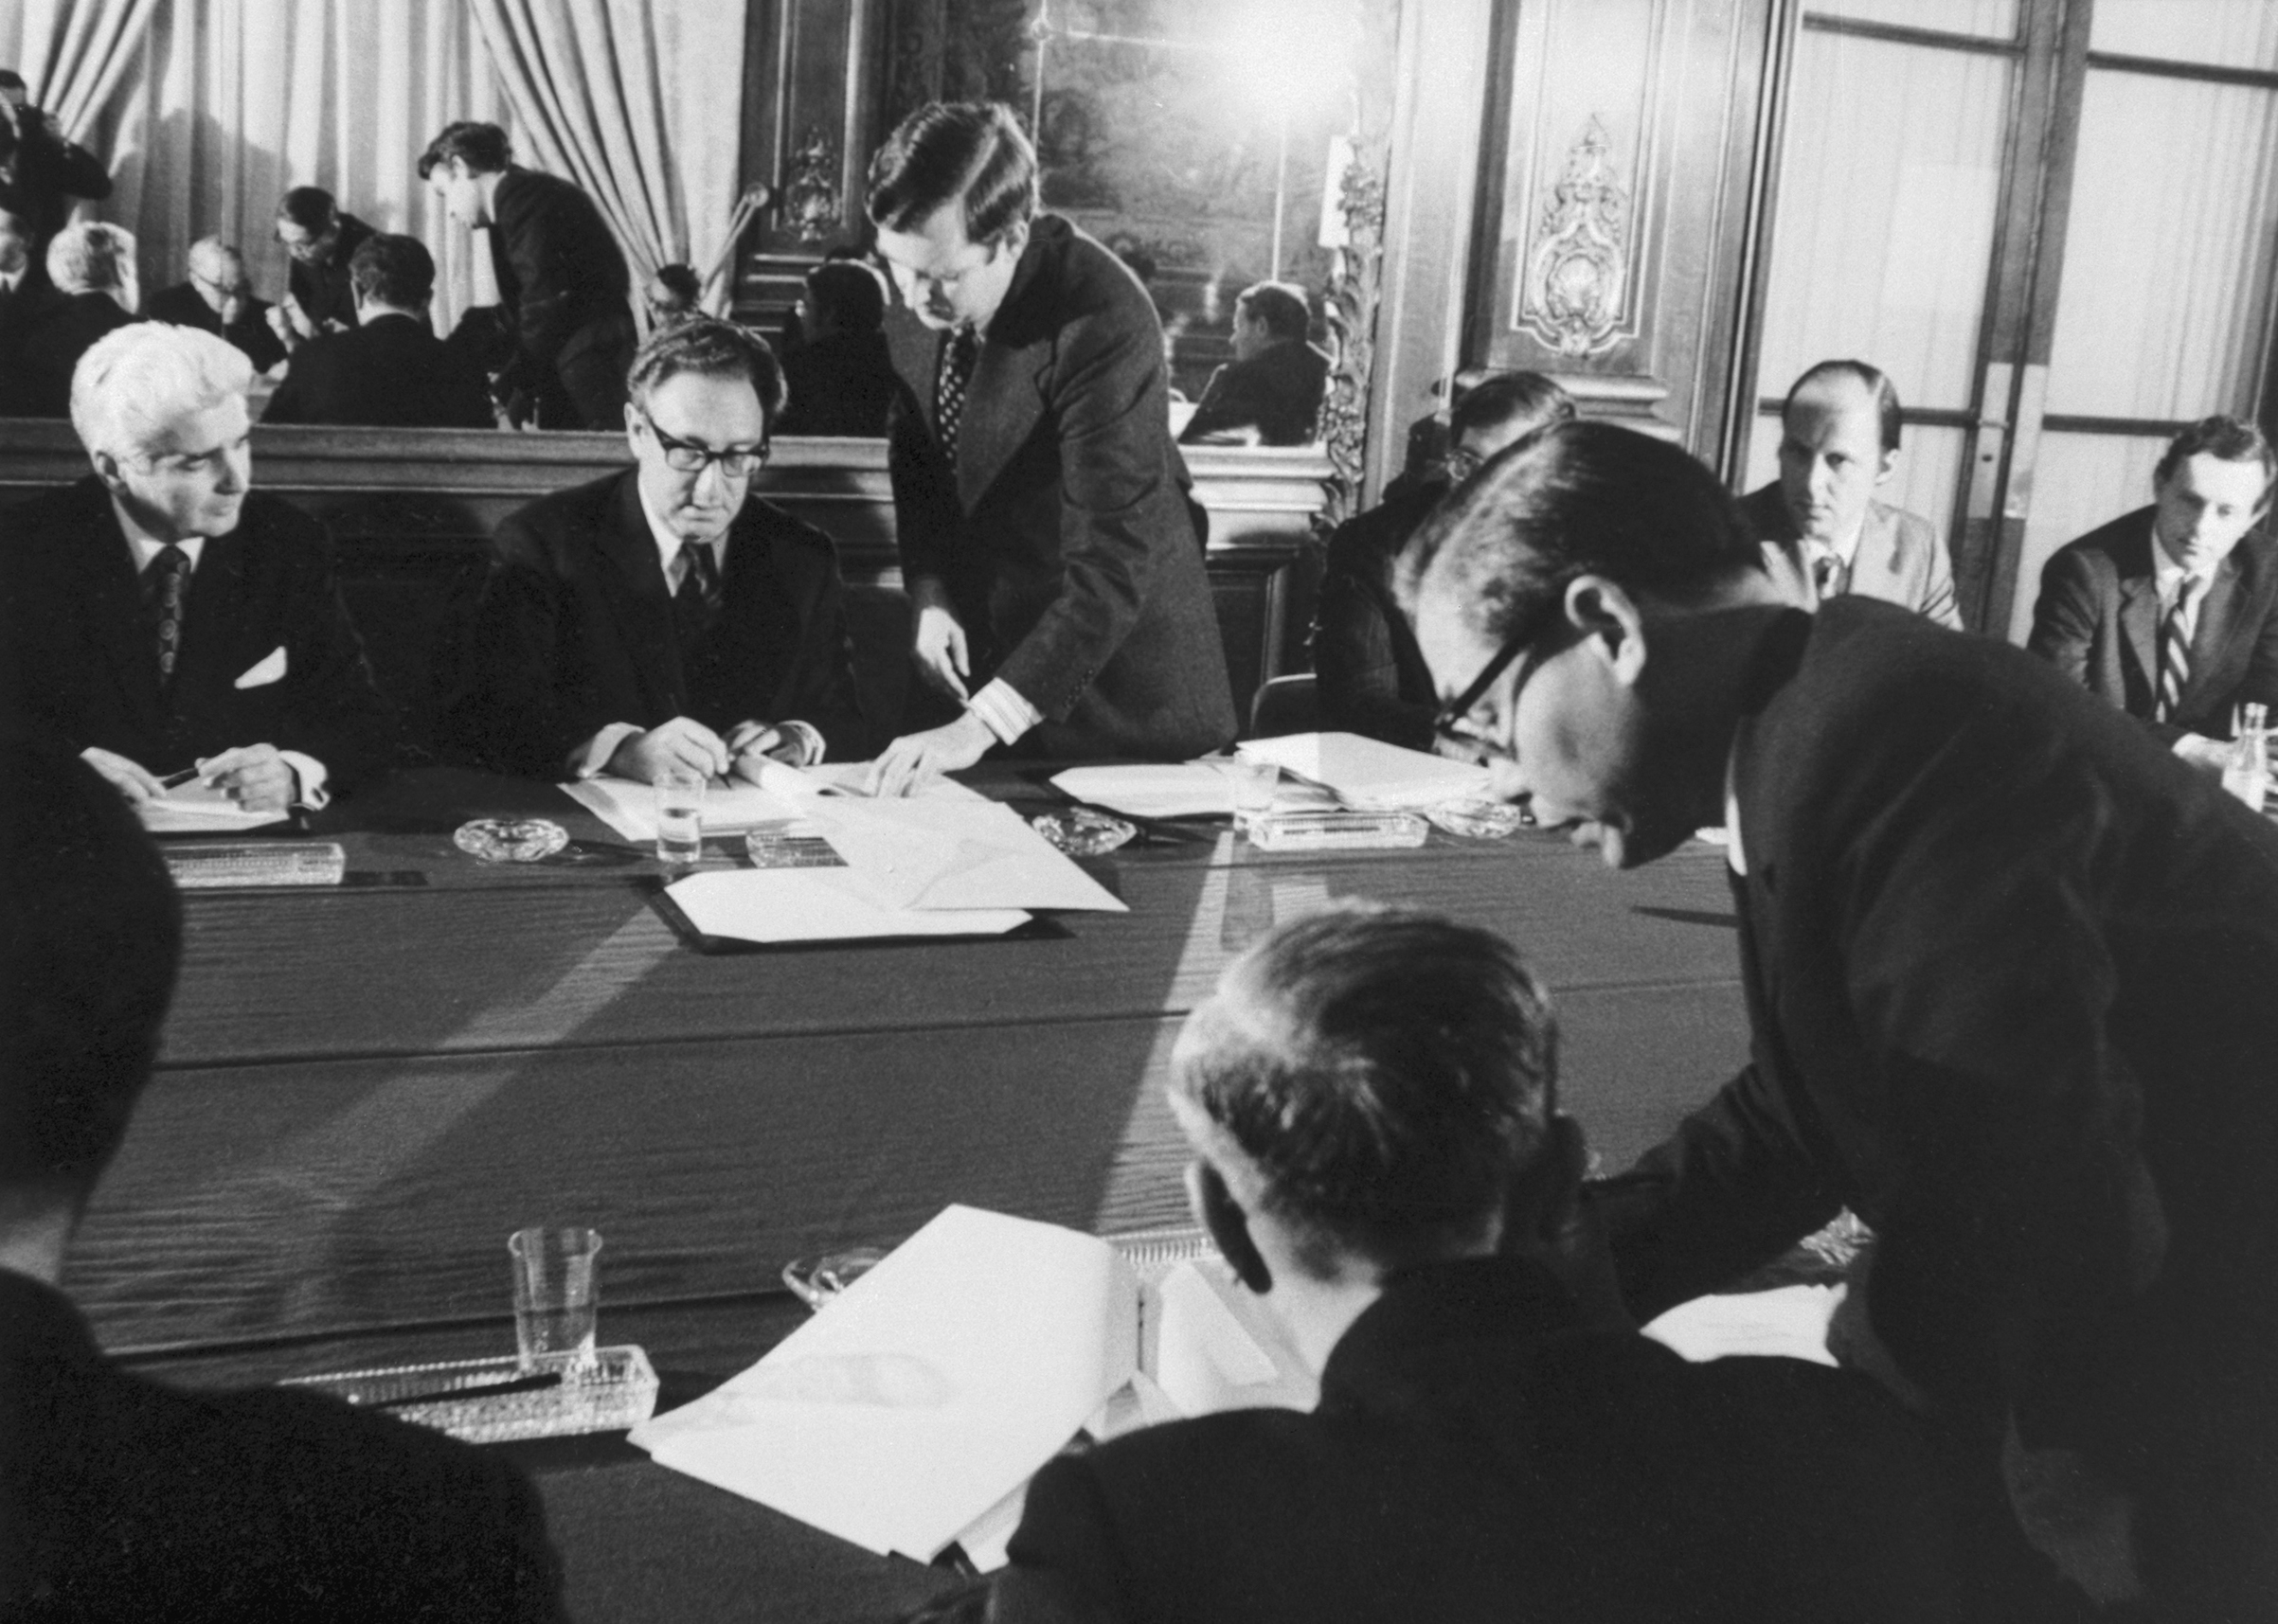 Dr. Henry Kissiinger, background, center, initialing the cease fire agreement in Paris. In the foreground Le Duc Tho affixes his signature.